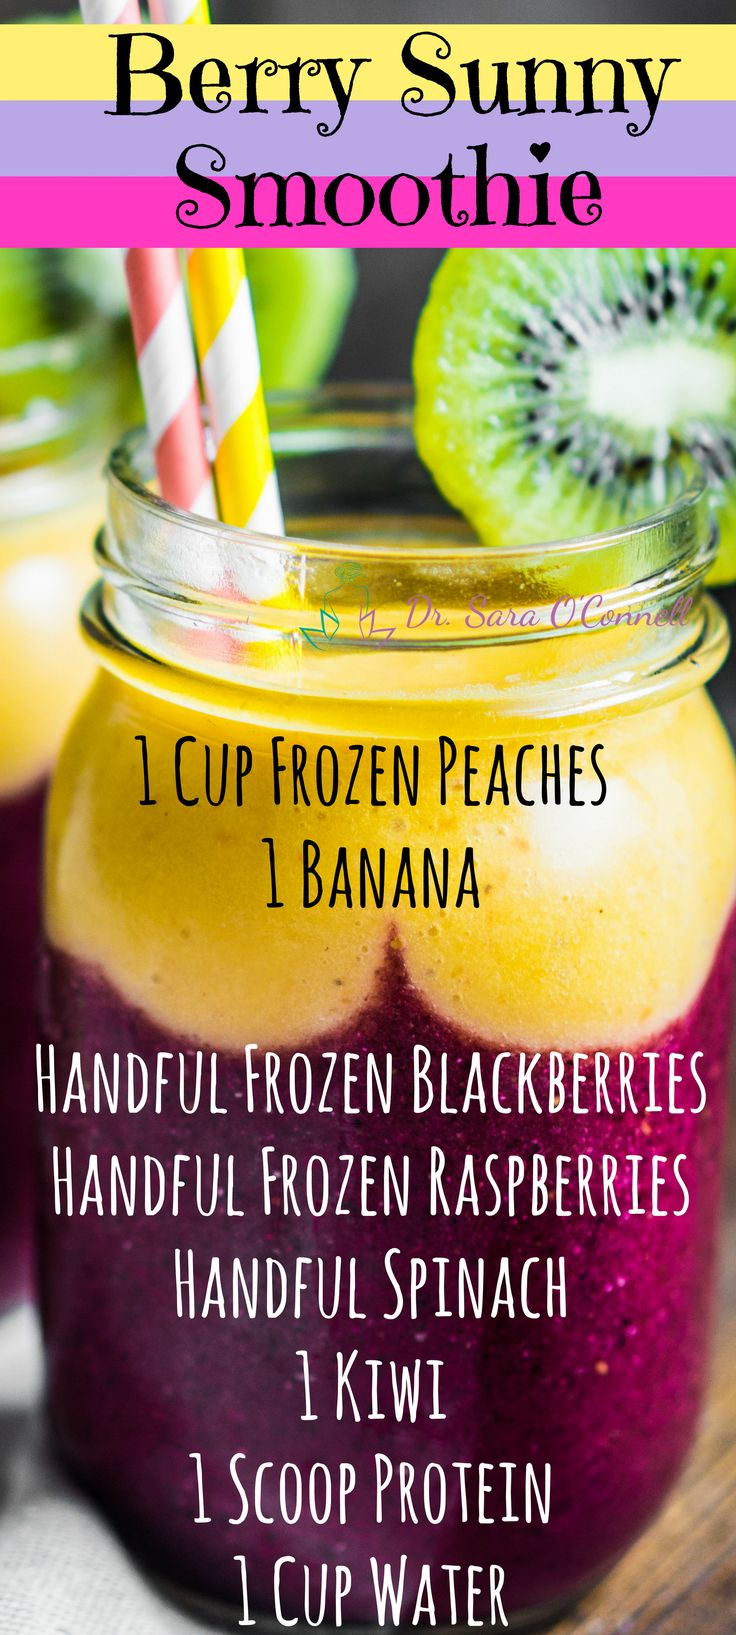 Fresh Berry Sunny Smoothie. This delicious, natural, green berry smoothie is the perfect healthy treat for summertime or adding more sunshine into your life. Top layer is frozen peaches and banana. Bottom layer is frozen blackberries, raspberries, spinach, kiwi and a scoop of protein powder, add water and blend! Repin if you are in and click on the image for my FREE clean eating grocery list!